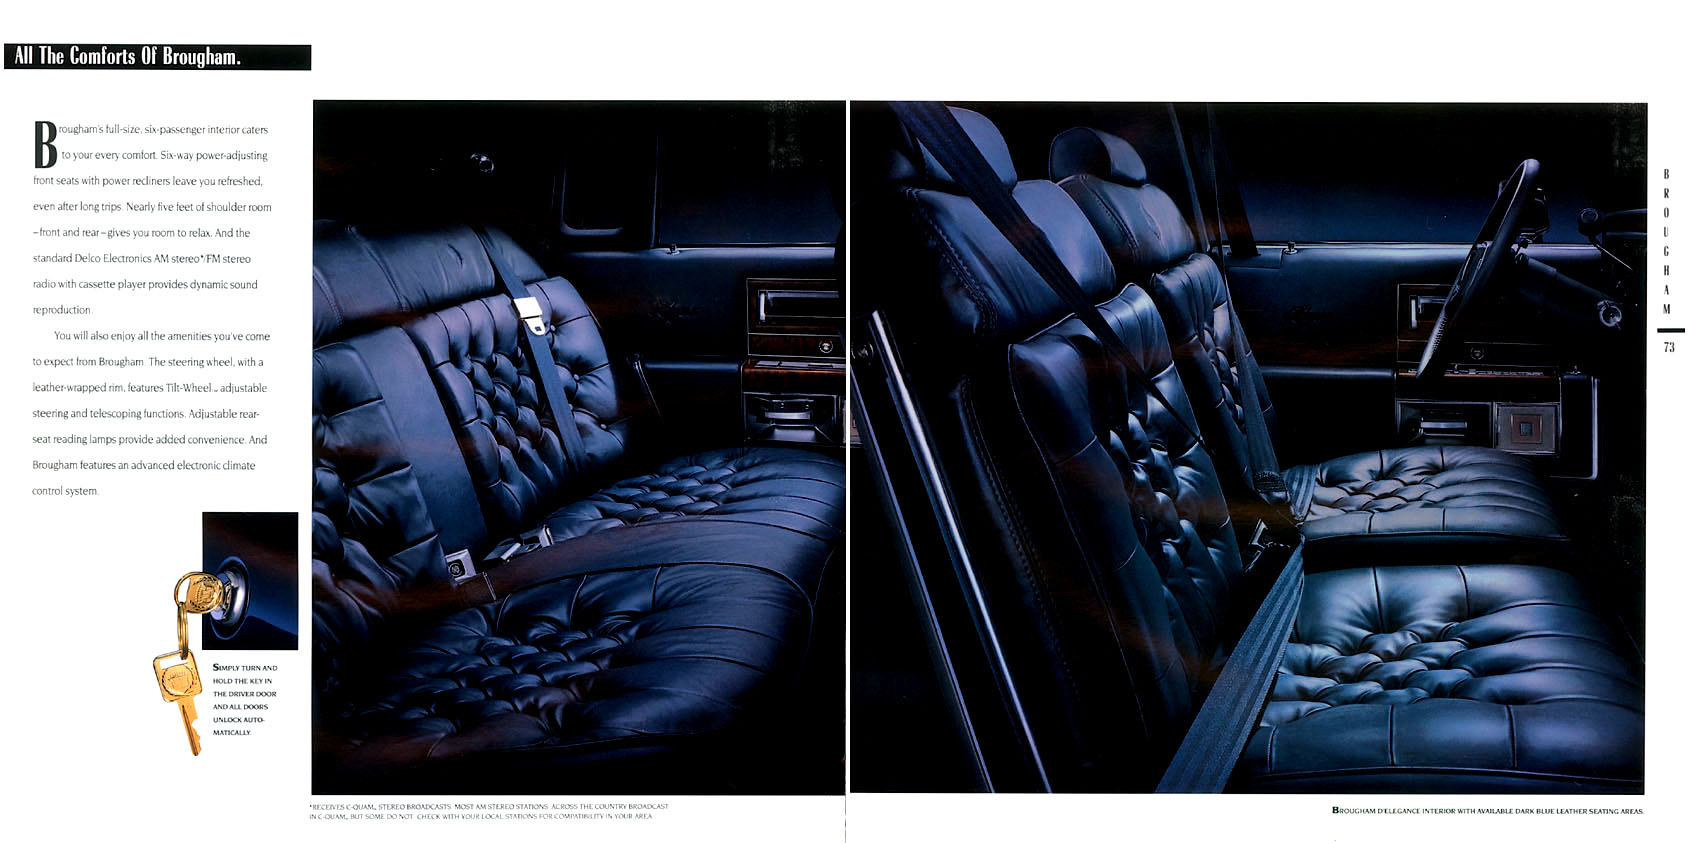 1992 Lincoln Town Car Image 9